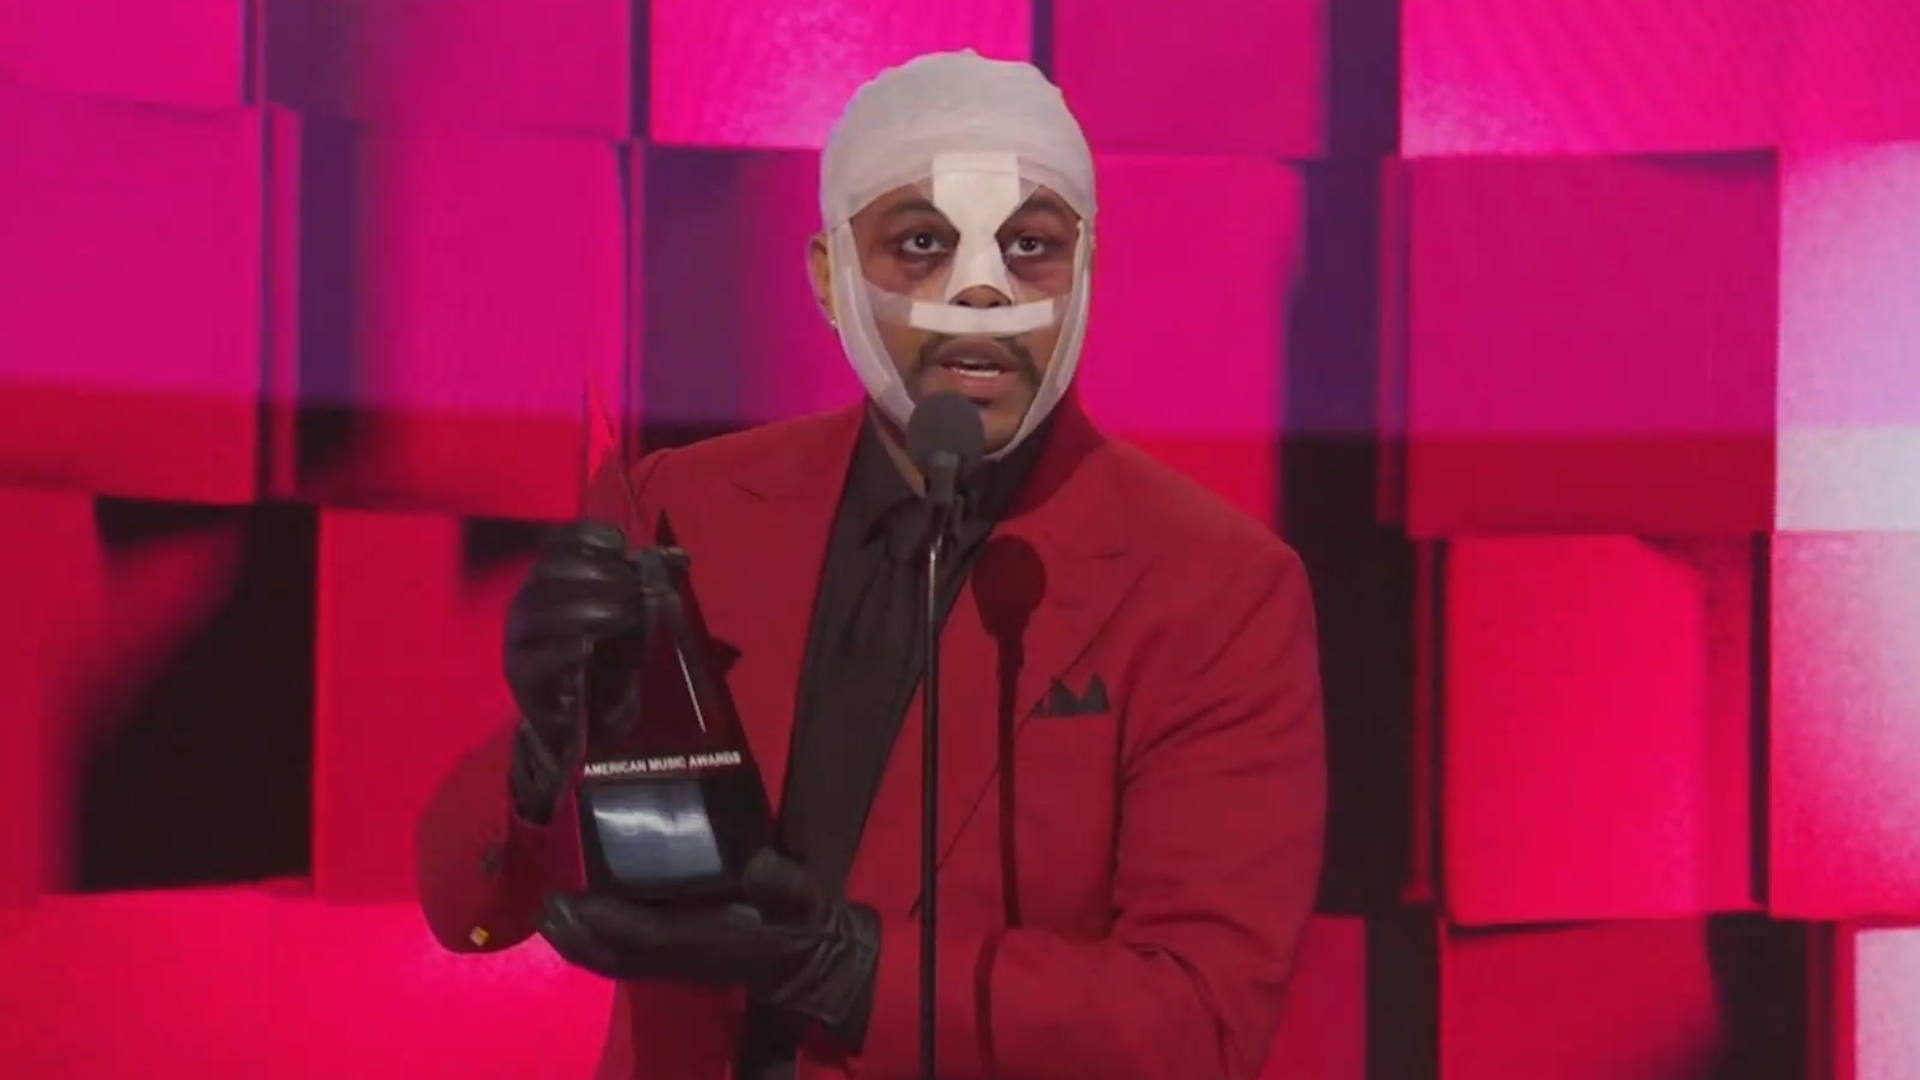 The Weeknd appears with bizarrely bandaged face at 2020 American Music Awards